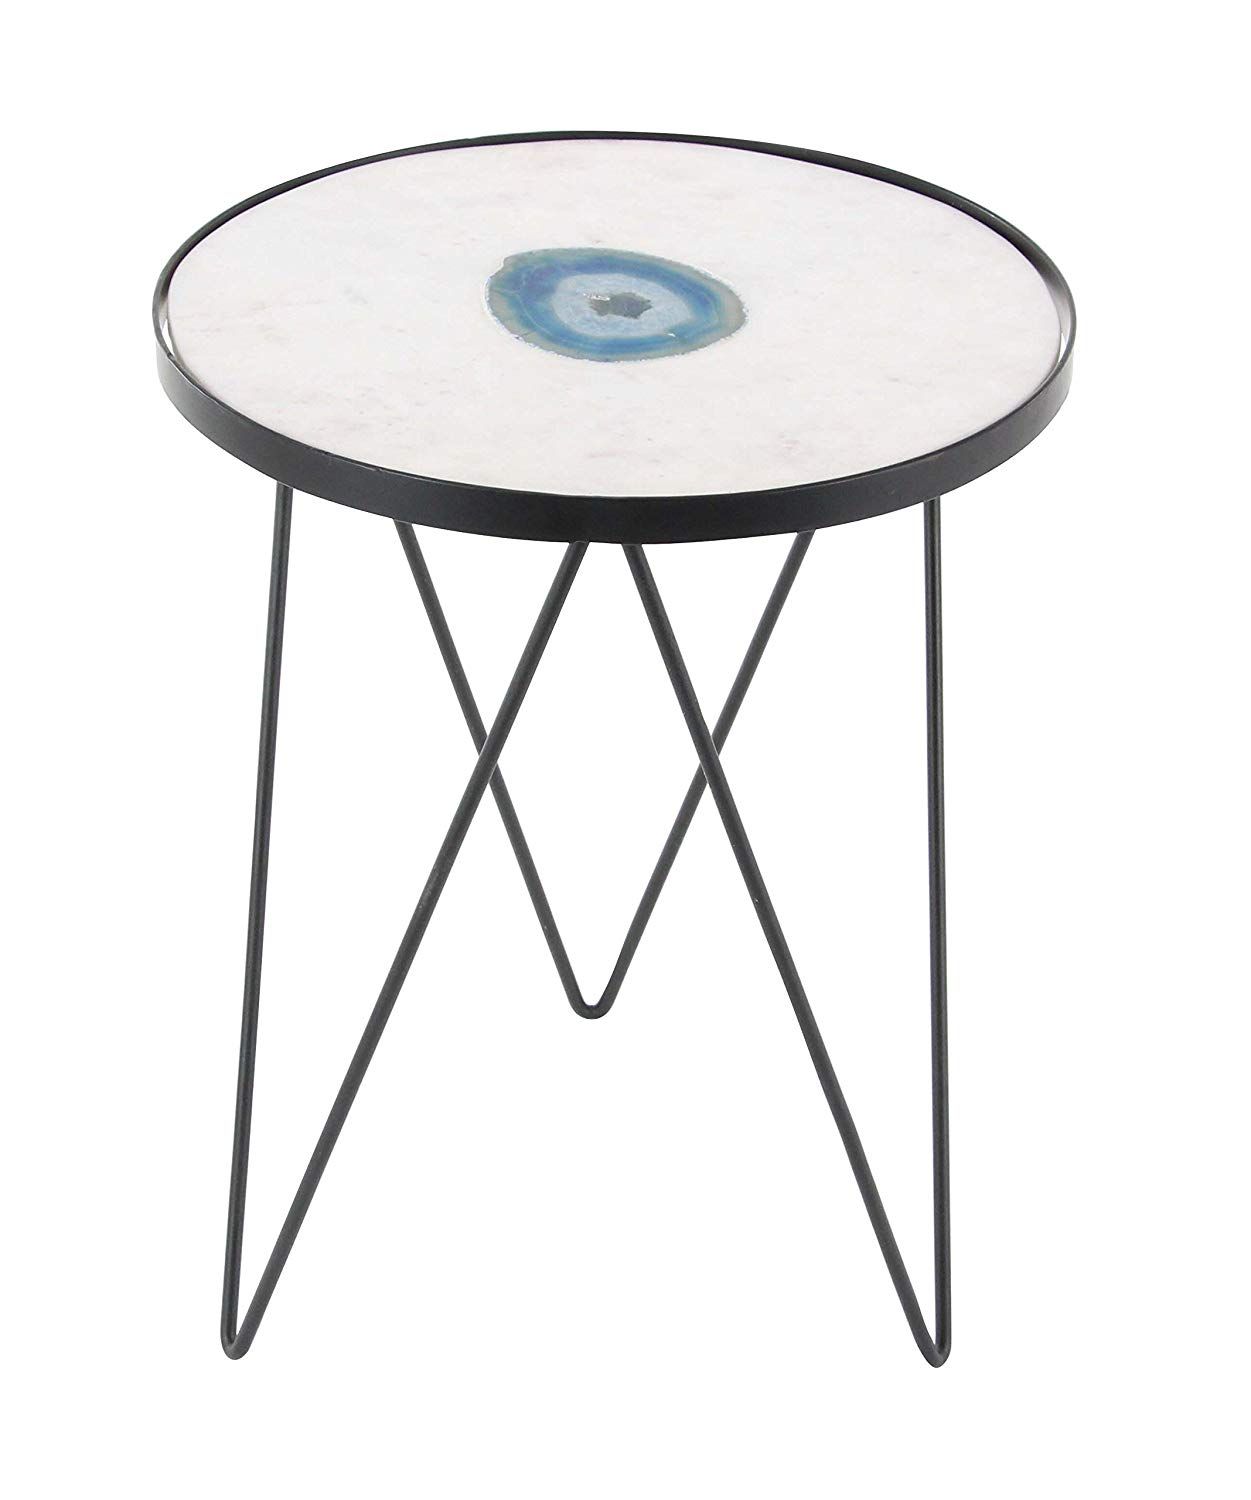 charming white marble and metal round accent table small for faux tablecloth pedestal wooden unfinished wood ideas covers decorating threshold side full size half circle home